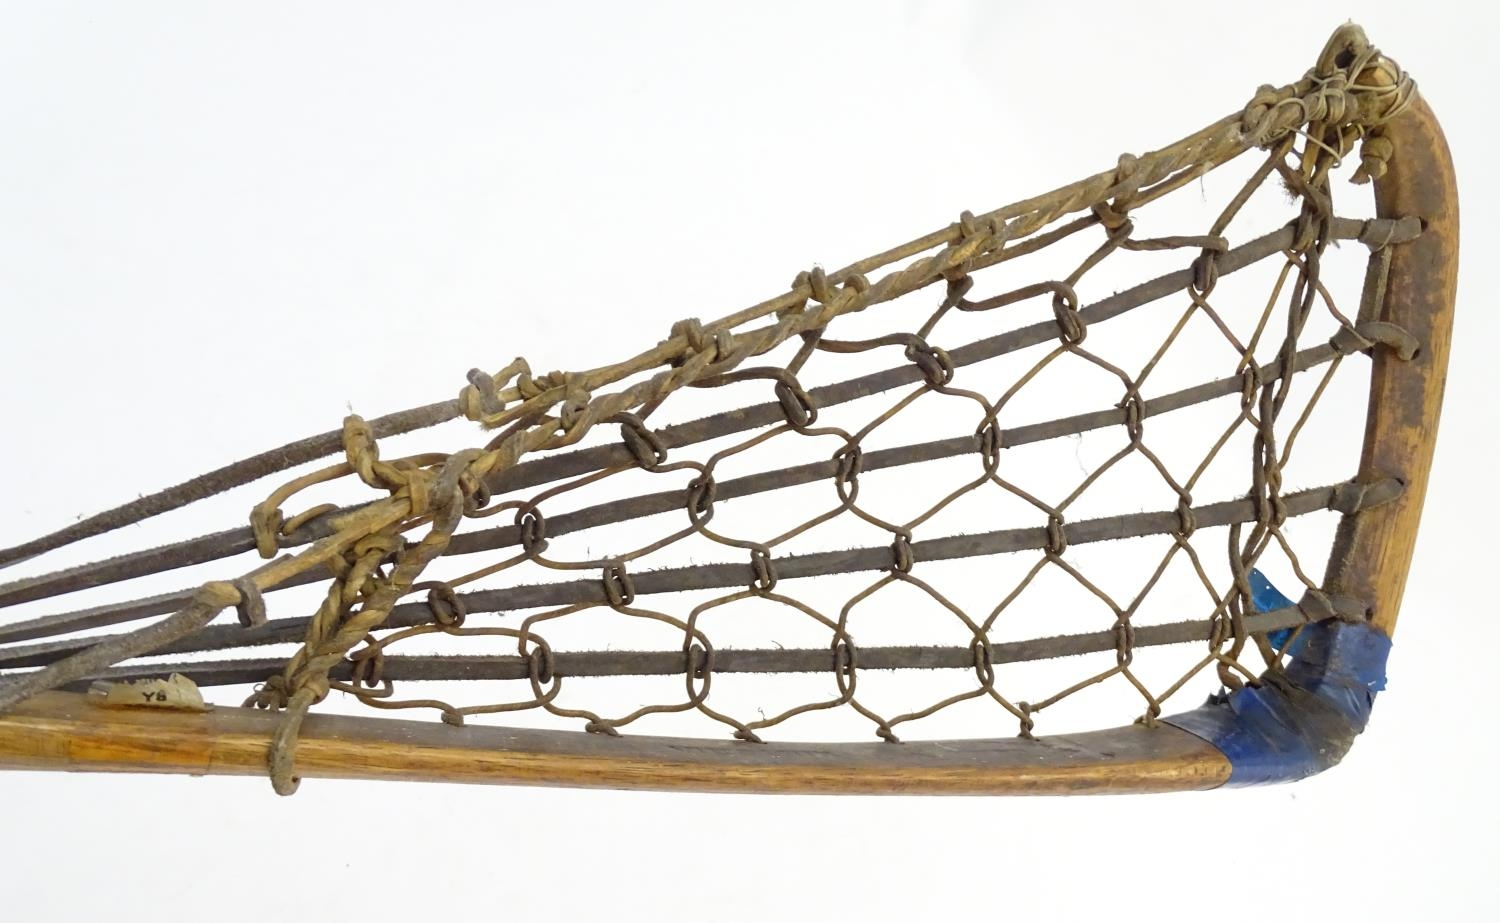 A Hattersley & Son wooden lacrosse stick / crosse, marked with maker and model Viktoria No. 1 to - Image 5 of 5